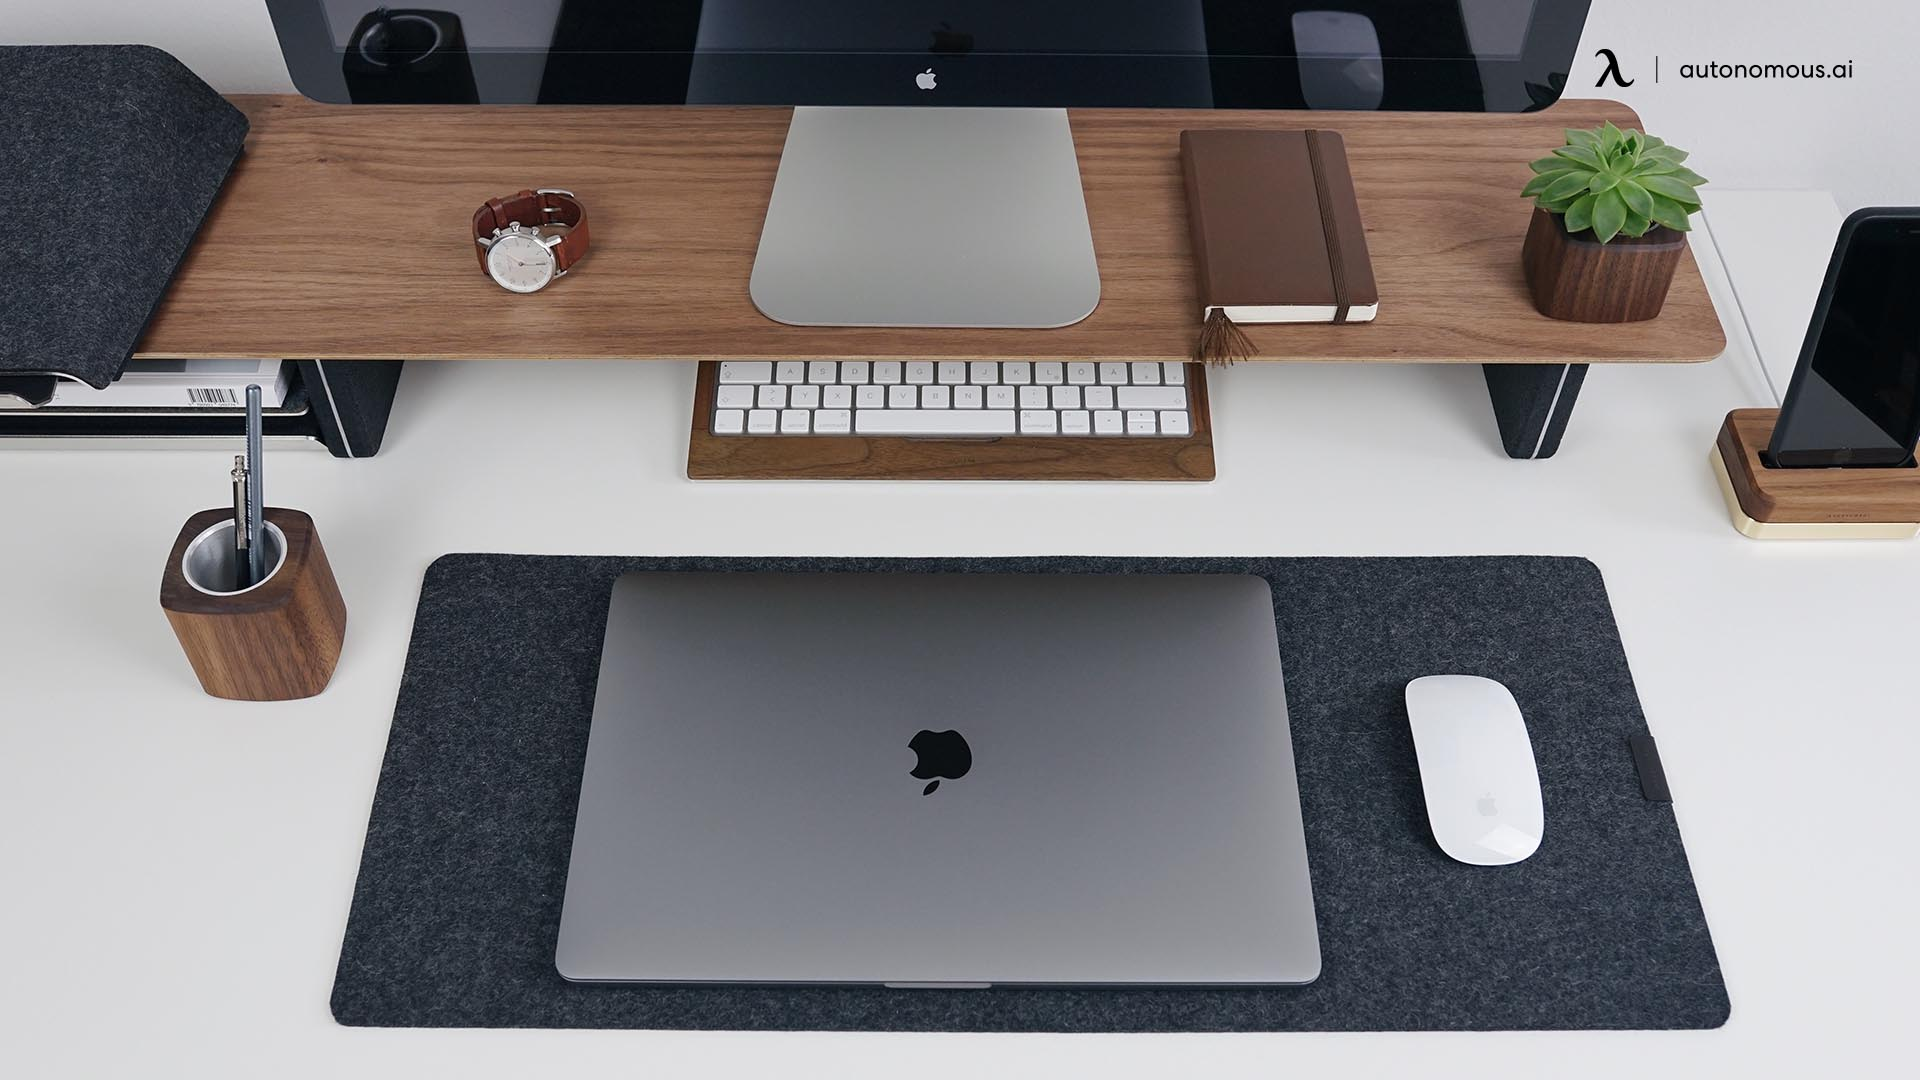 What Is a Productive Ultimate Desk Setup?